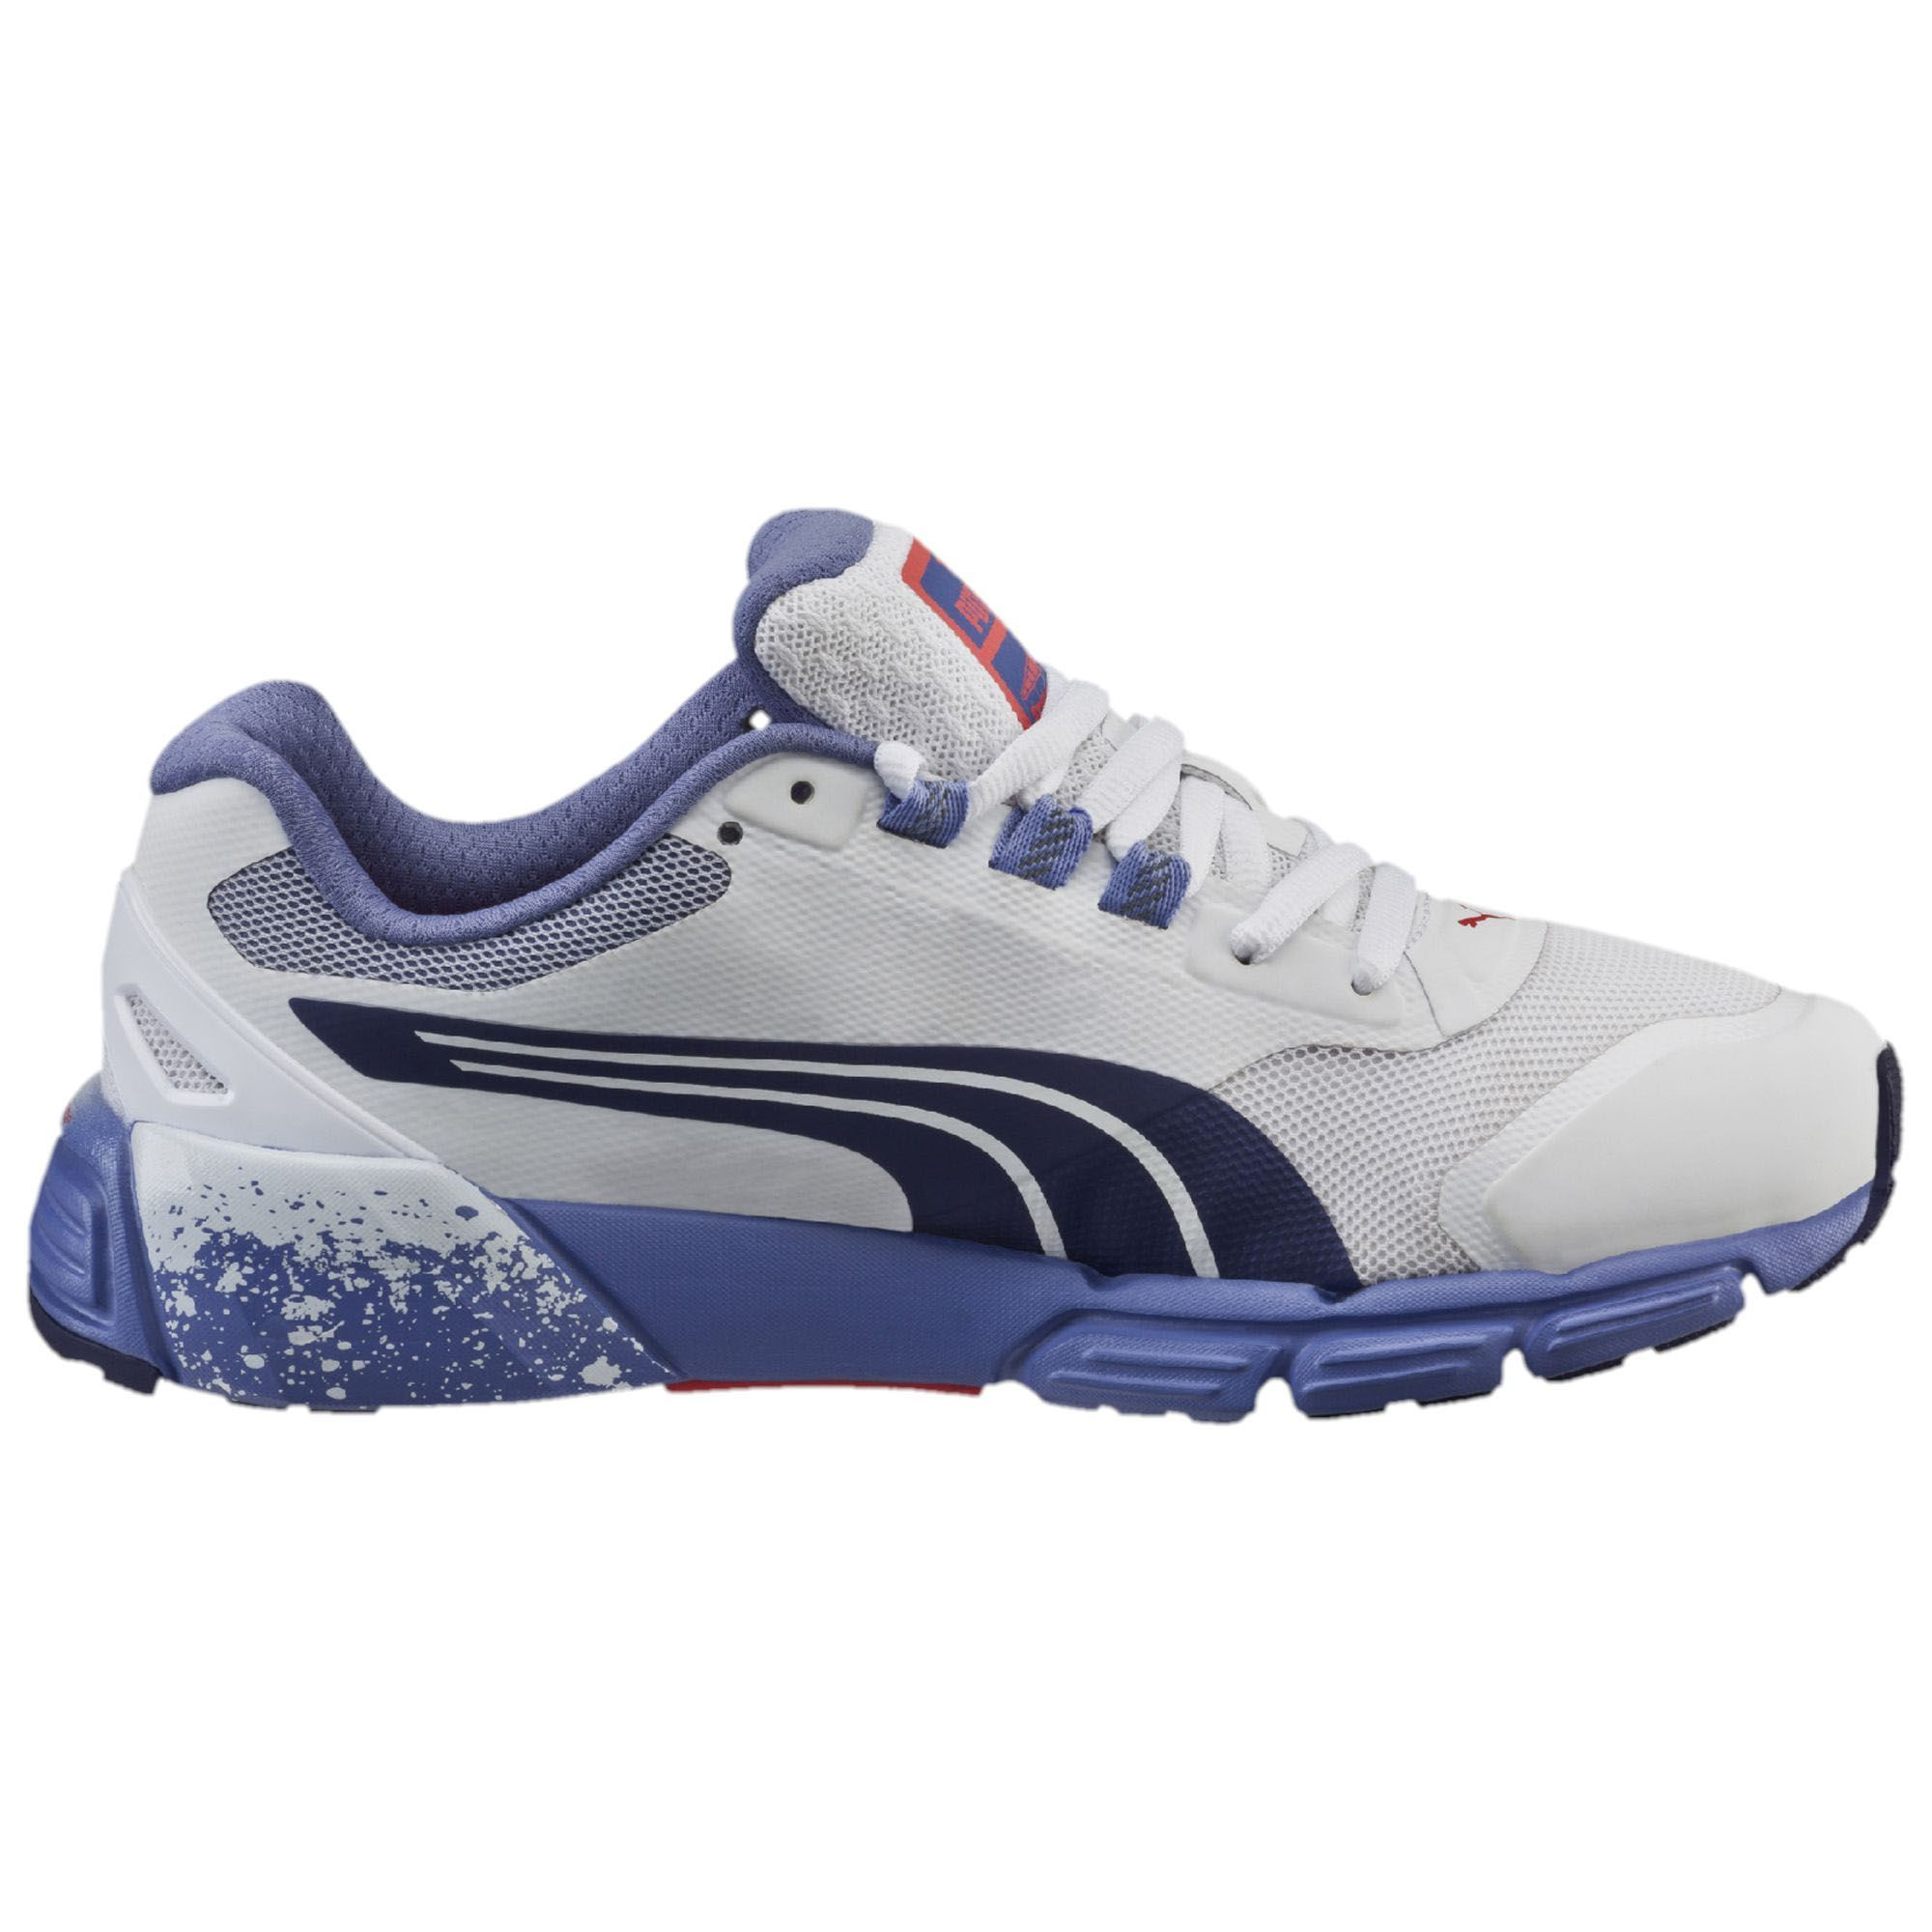 Puma Faas  V Ladies Running Shoes